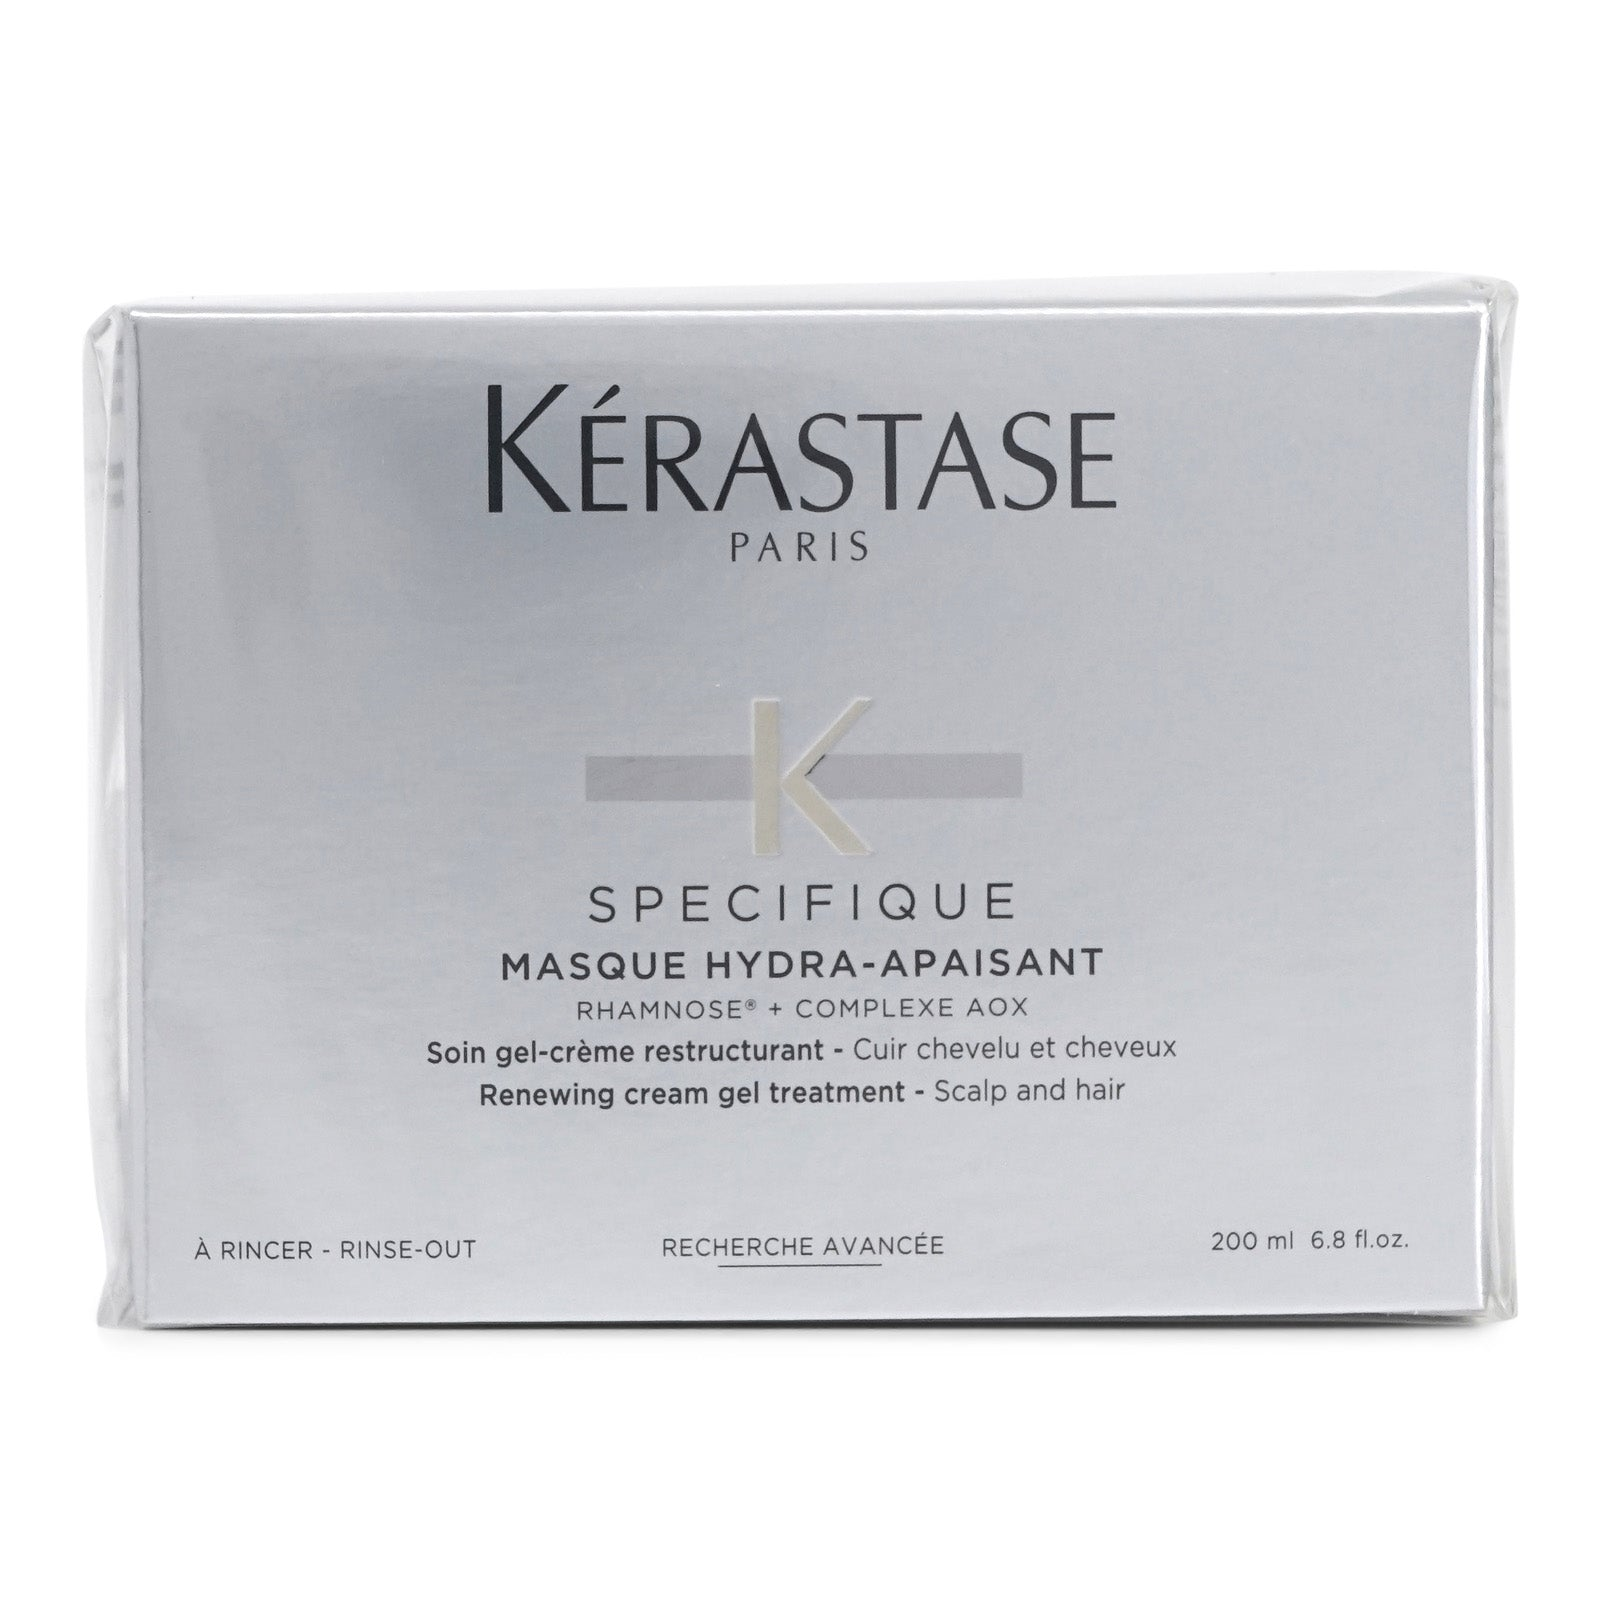 Kerastase Specifique Masque Hydra-Apaisant , concentrated antioxidant